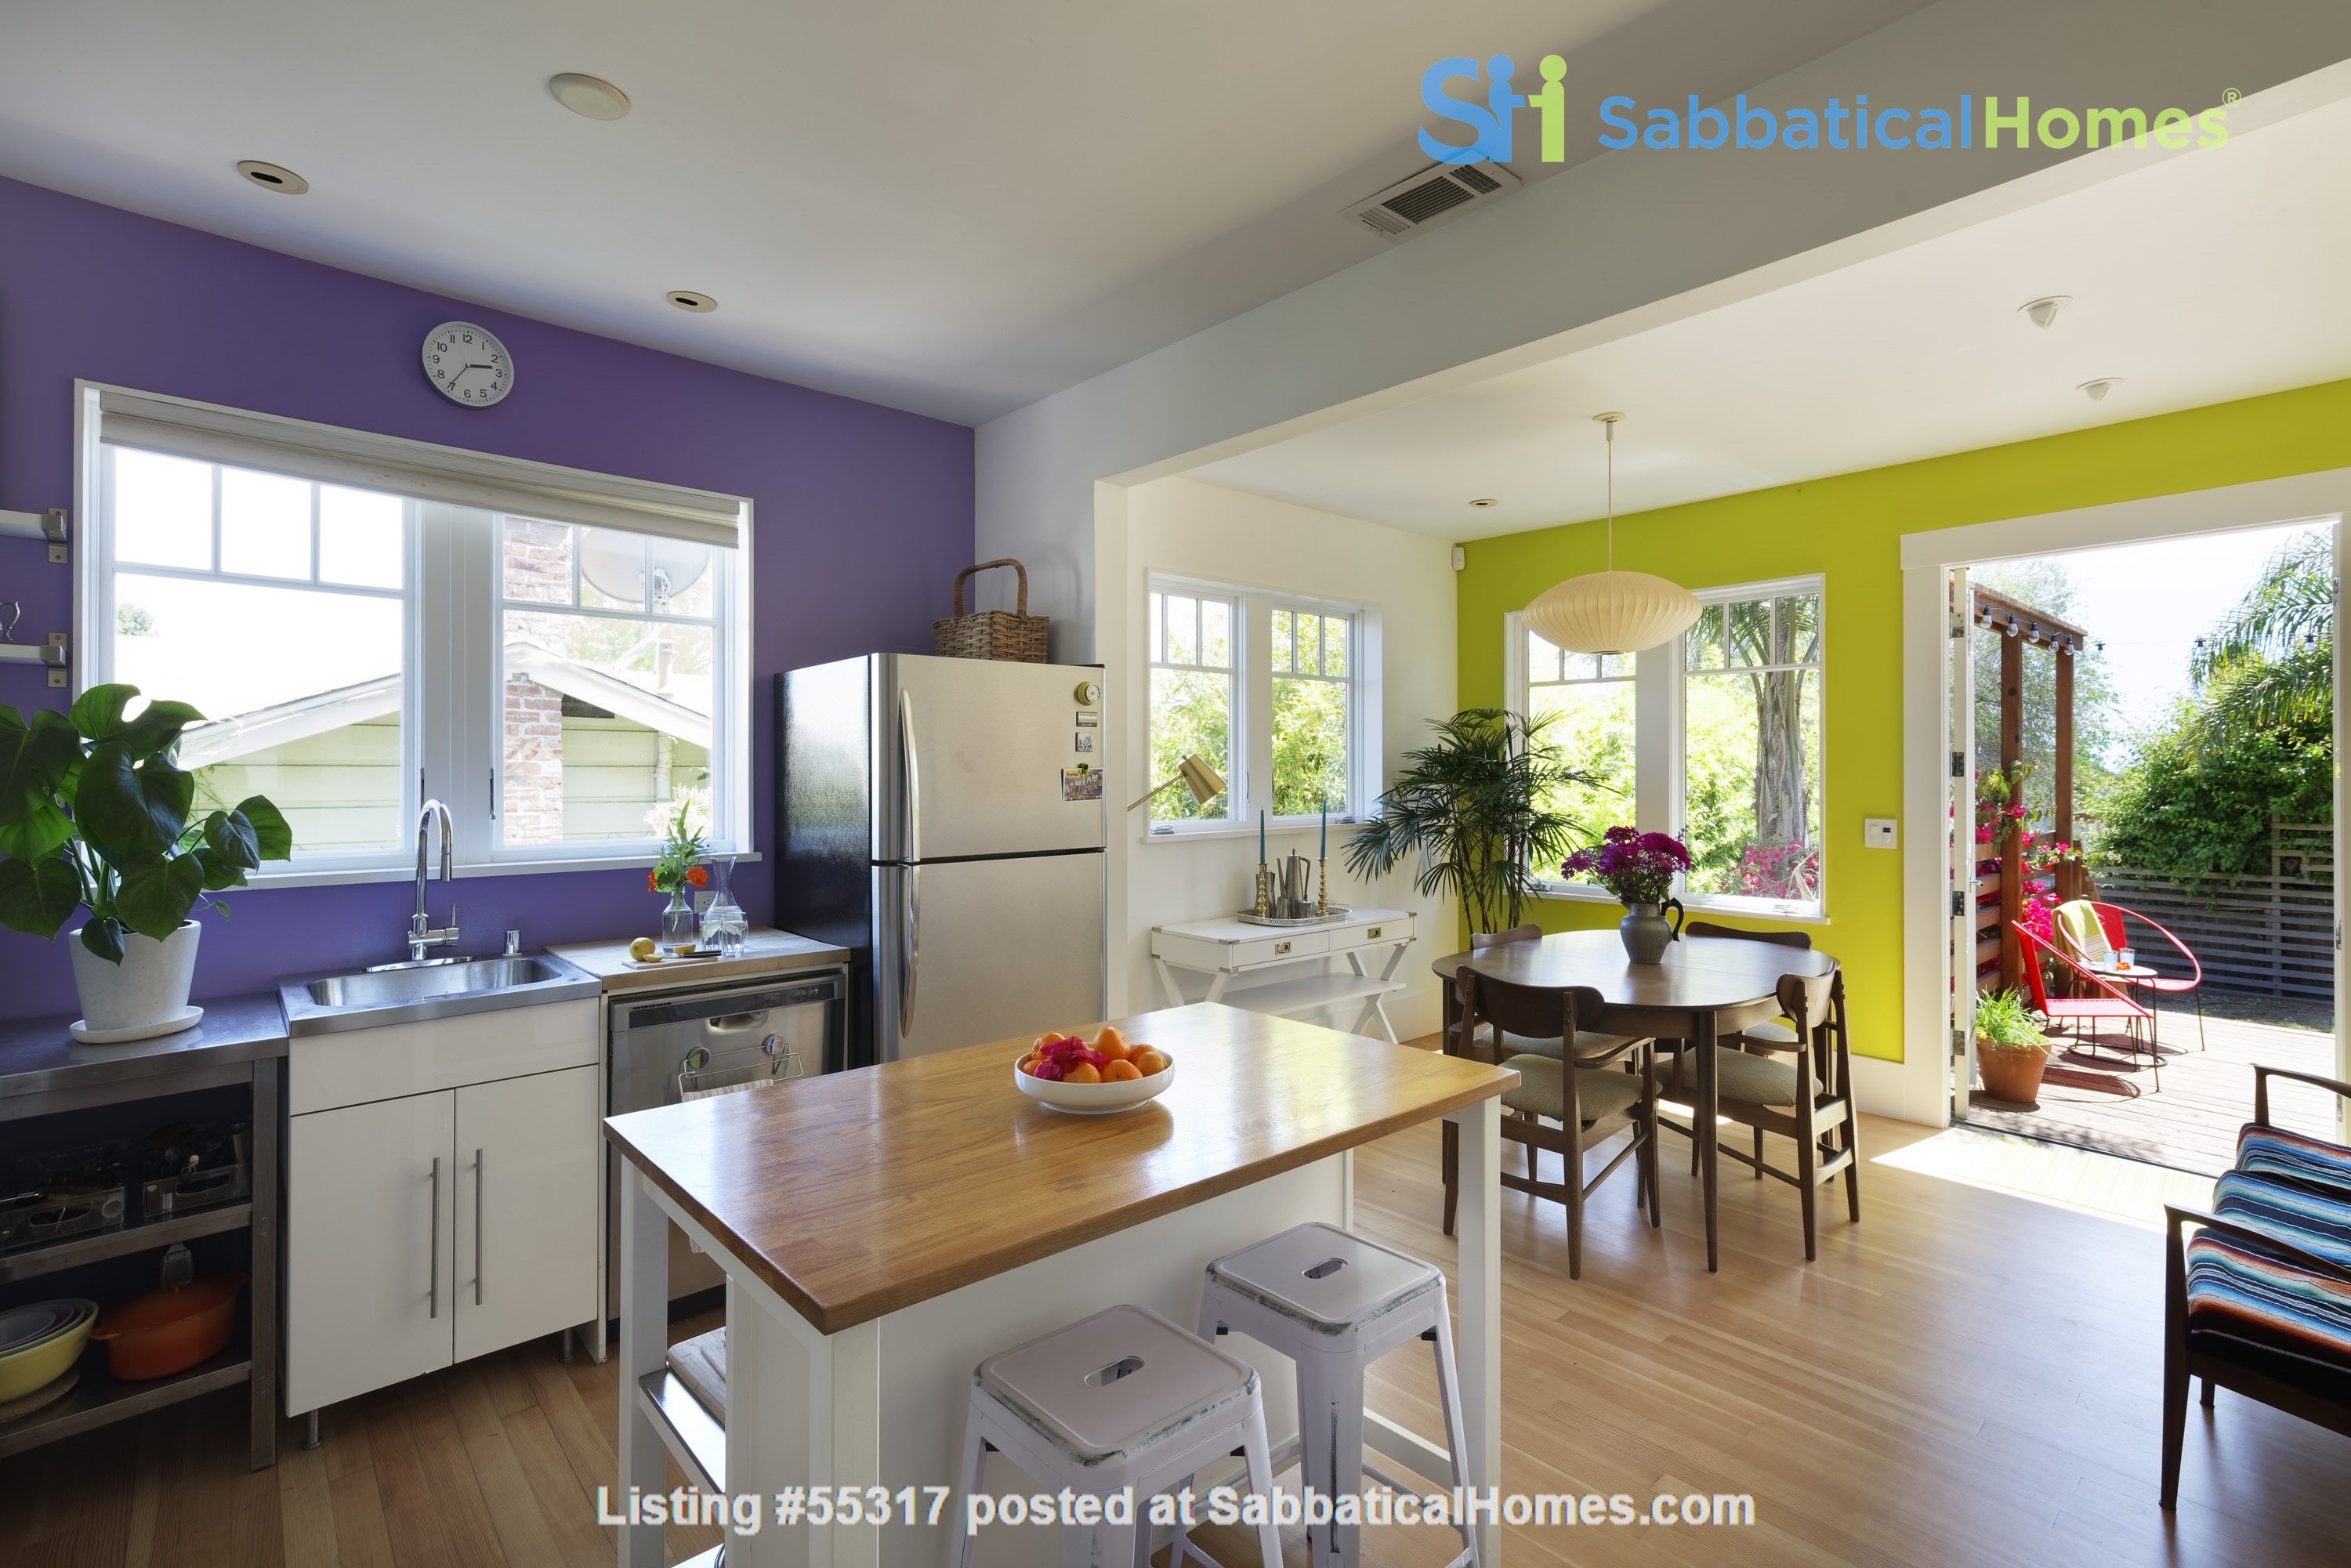 TROPICAL MODERN BUNGALOW- Oakland house near shops and hiking trails Home Rental in Oakland, California, United States 5